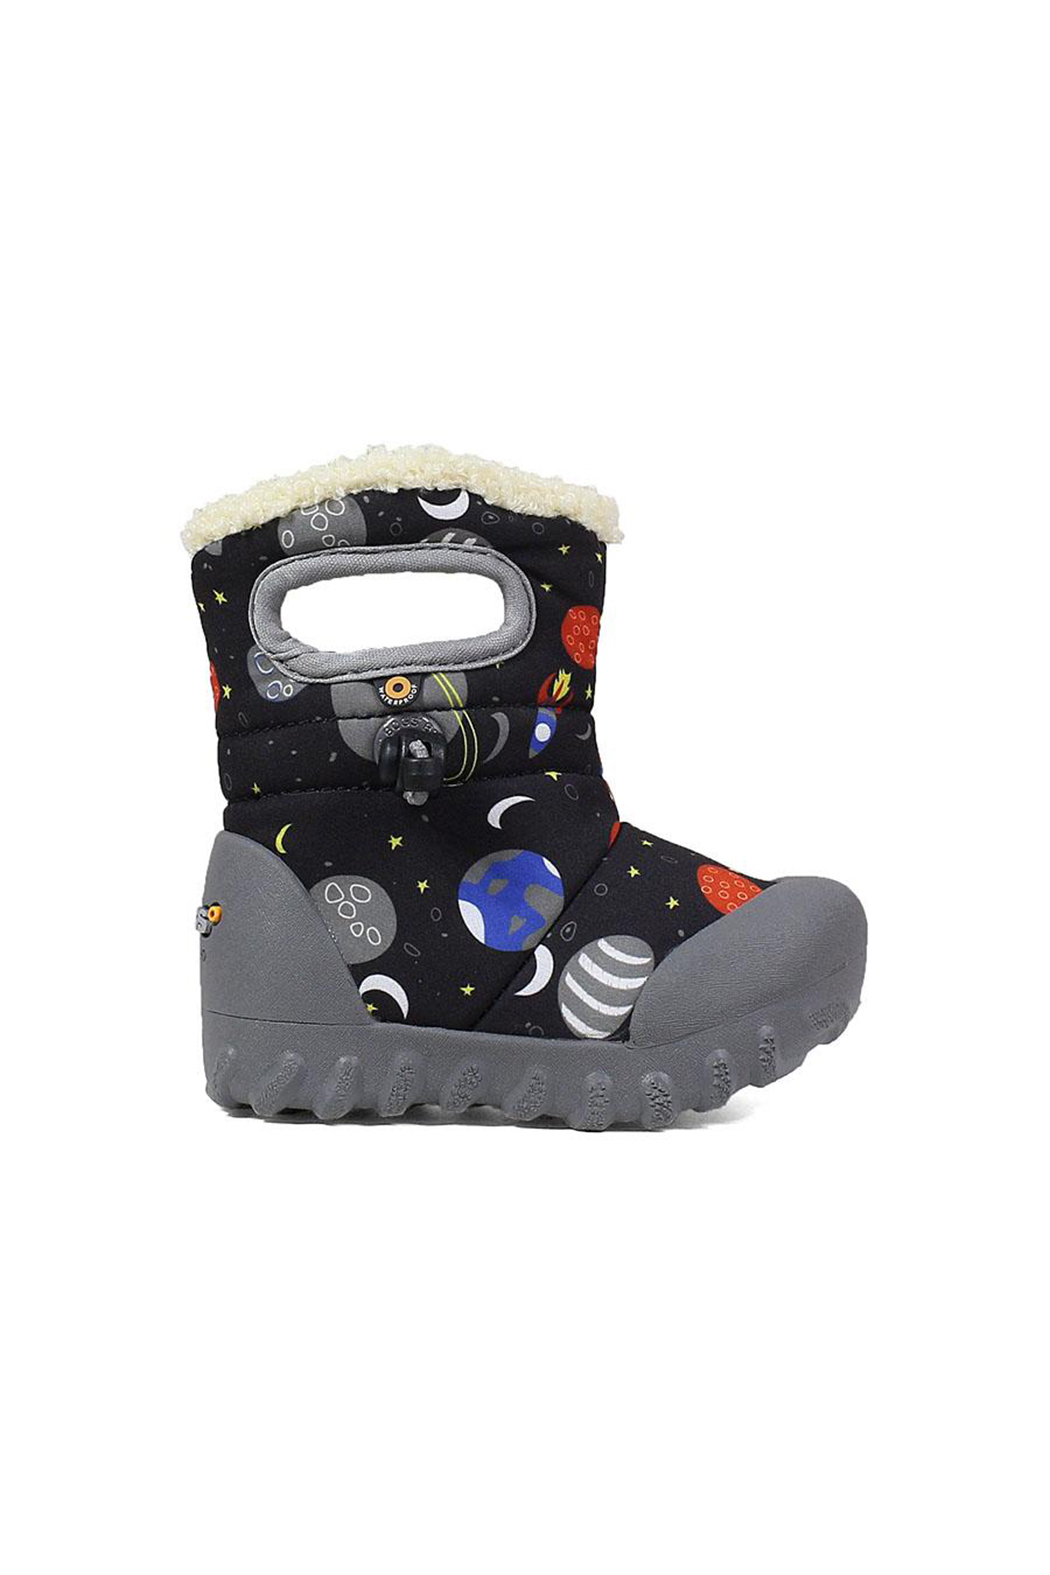 BOGS B-Moc Space Kids Insulated Boots - Main Image